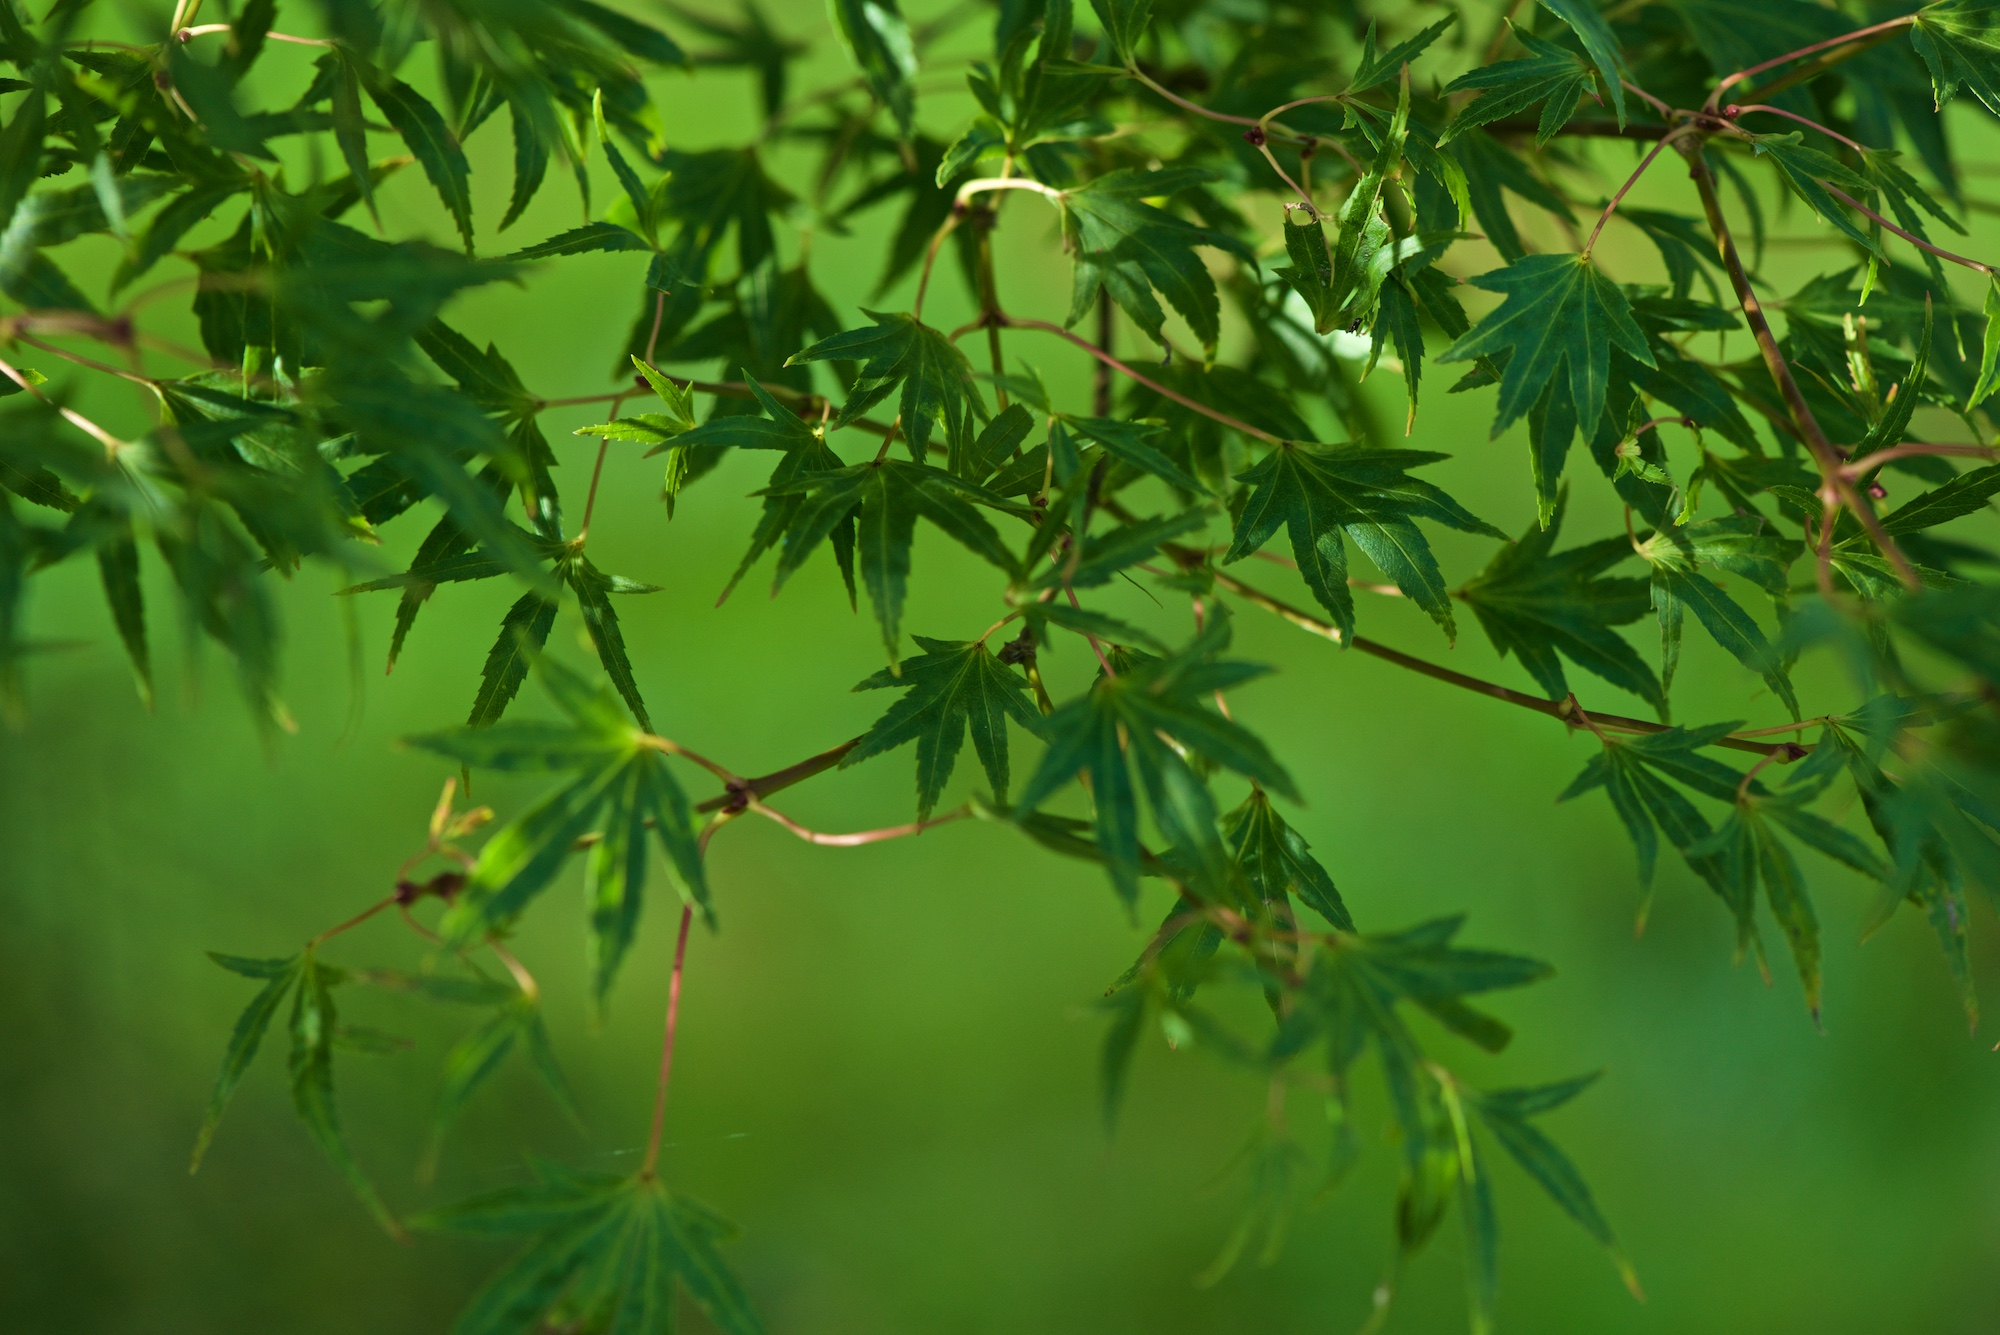 Many small green maple leaves against a green background.